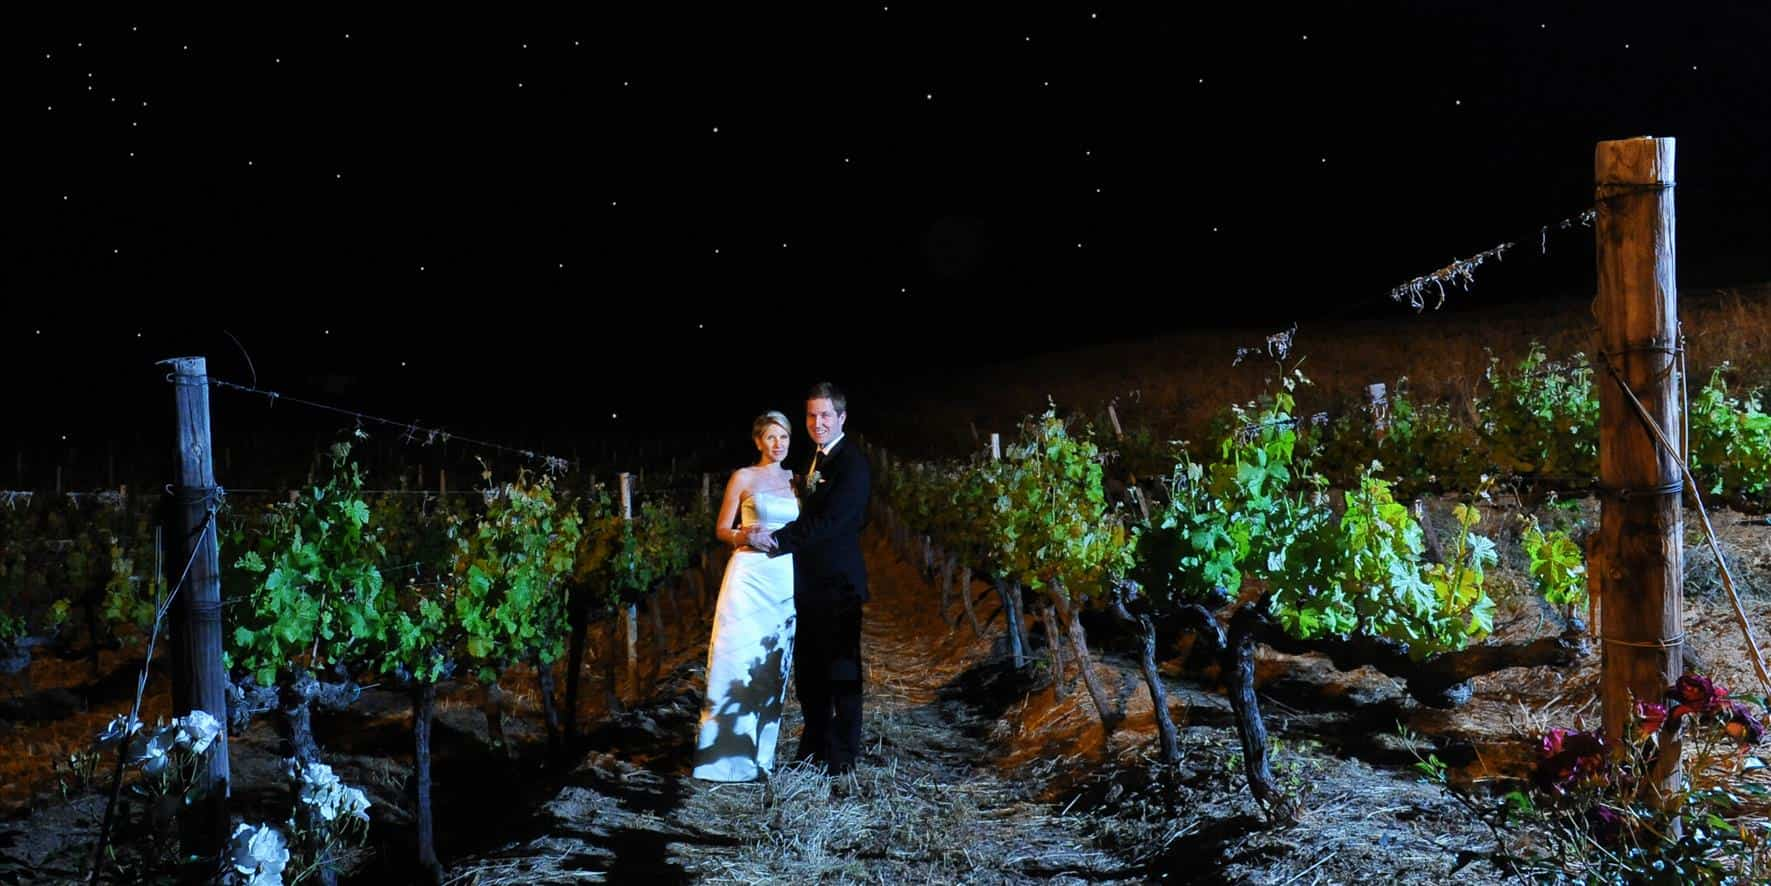 wedding couple at night in vineyard